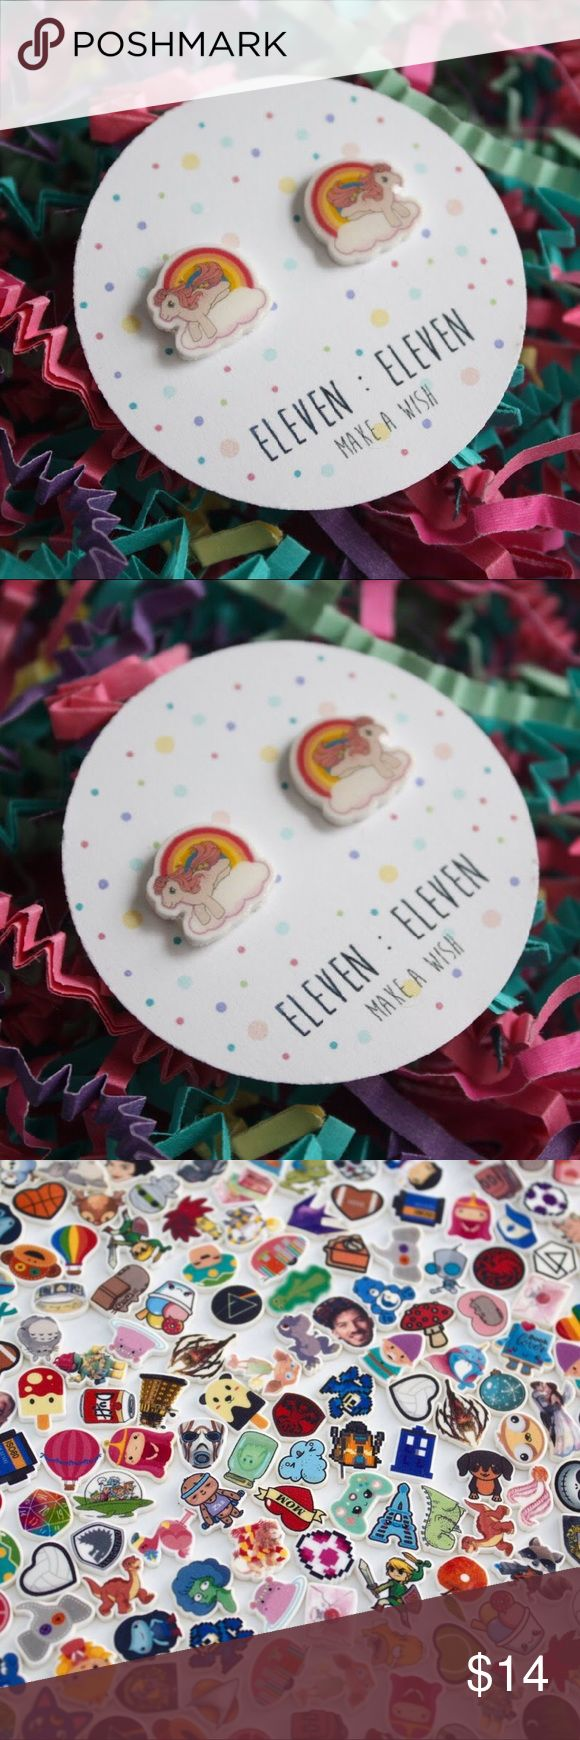 Rainbow My Little Pony Classic Cartoon Studs Hello & Welcome to my shop, Eleven Dot Dot Eleven! Everything is handmade by me!   🍄 This listing is for 1 Pair of MLP Stud Post Earrings! ⭐️  Silver Plated Nickel Free Posts I also have 100% hard plastic posts for super sensitive ears available upon request!   All earrings are made of a hard plastic type material. They are sealed with a clear gloss resin to make them waterproof and long lasting!   I am currently selling stock - I will not be…